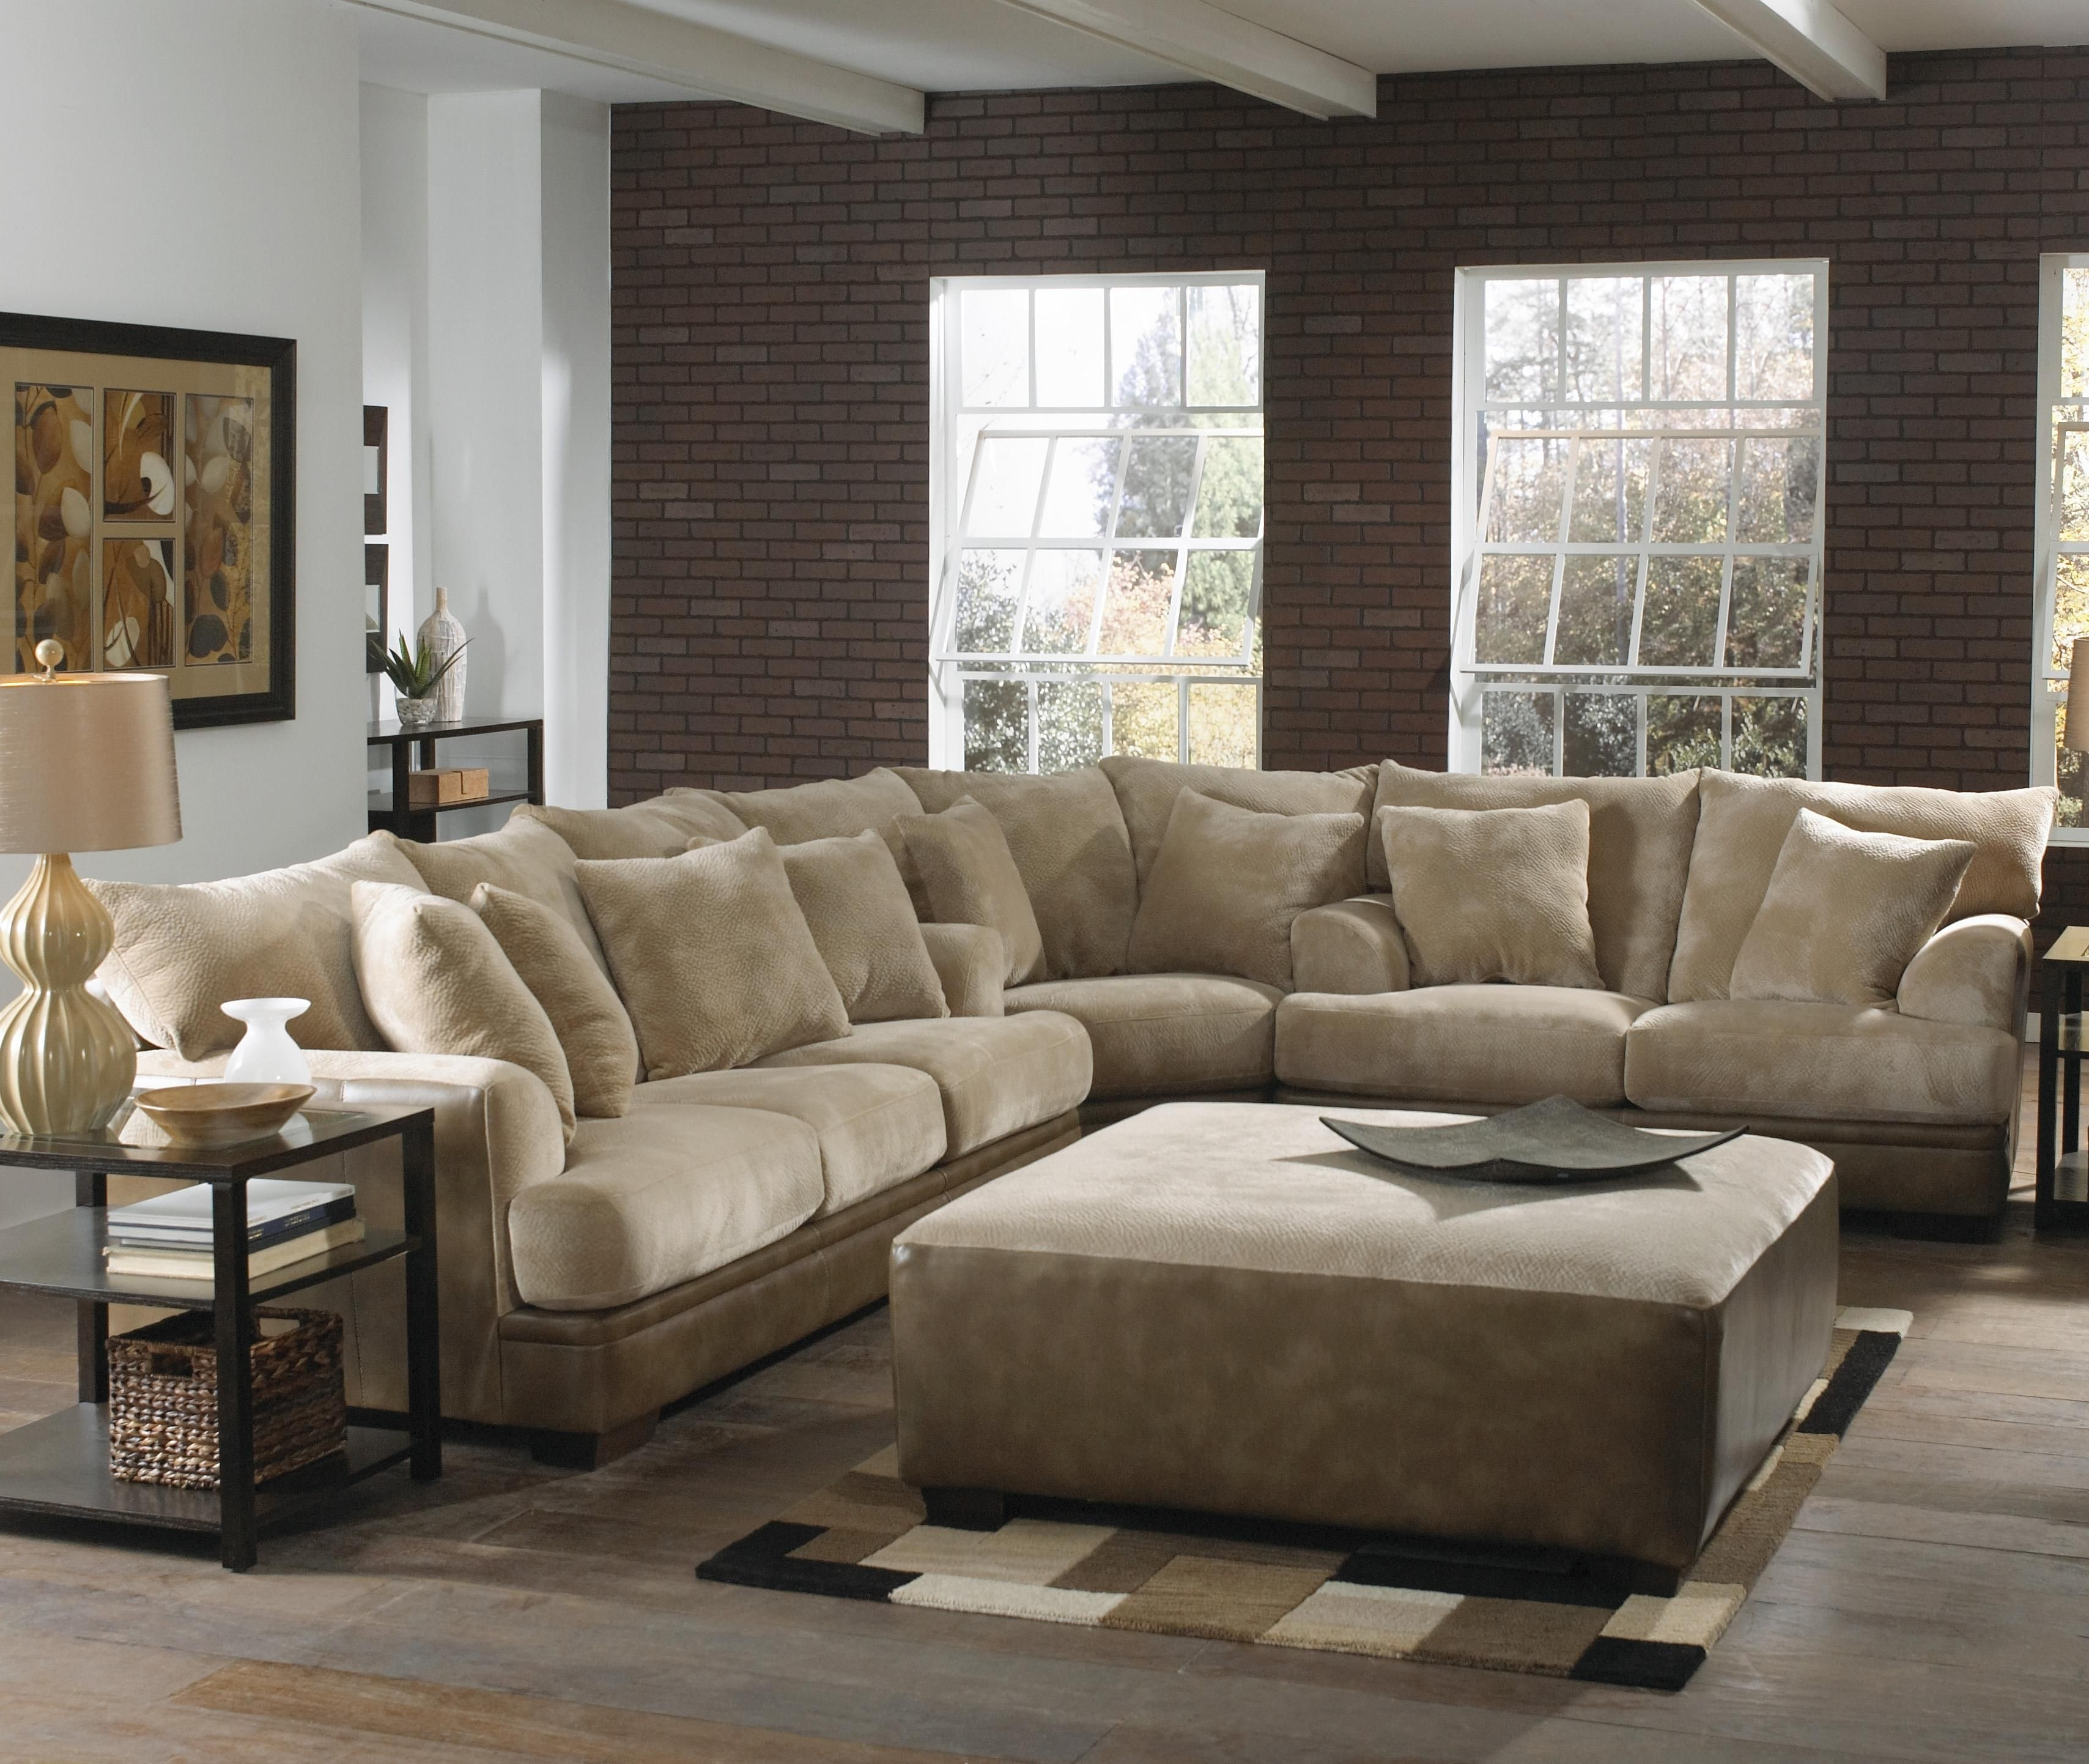 Barkley Large L Shaped Sectional Sofa With Right Side Loveseat Throughout Jackson Ms Sectional Sofas (View 6 of 10)